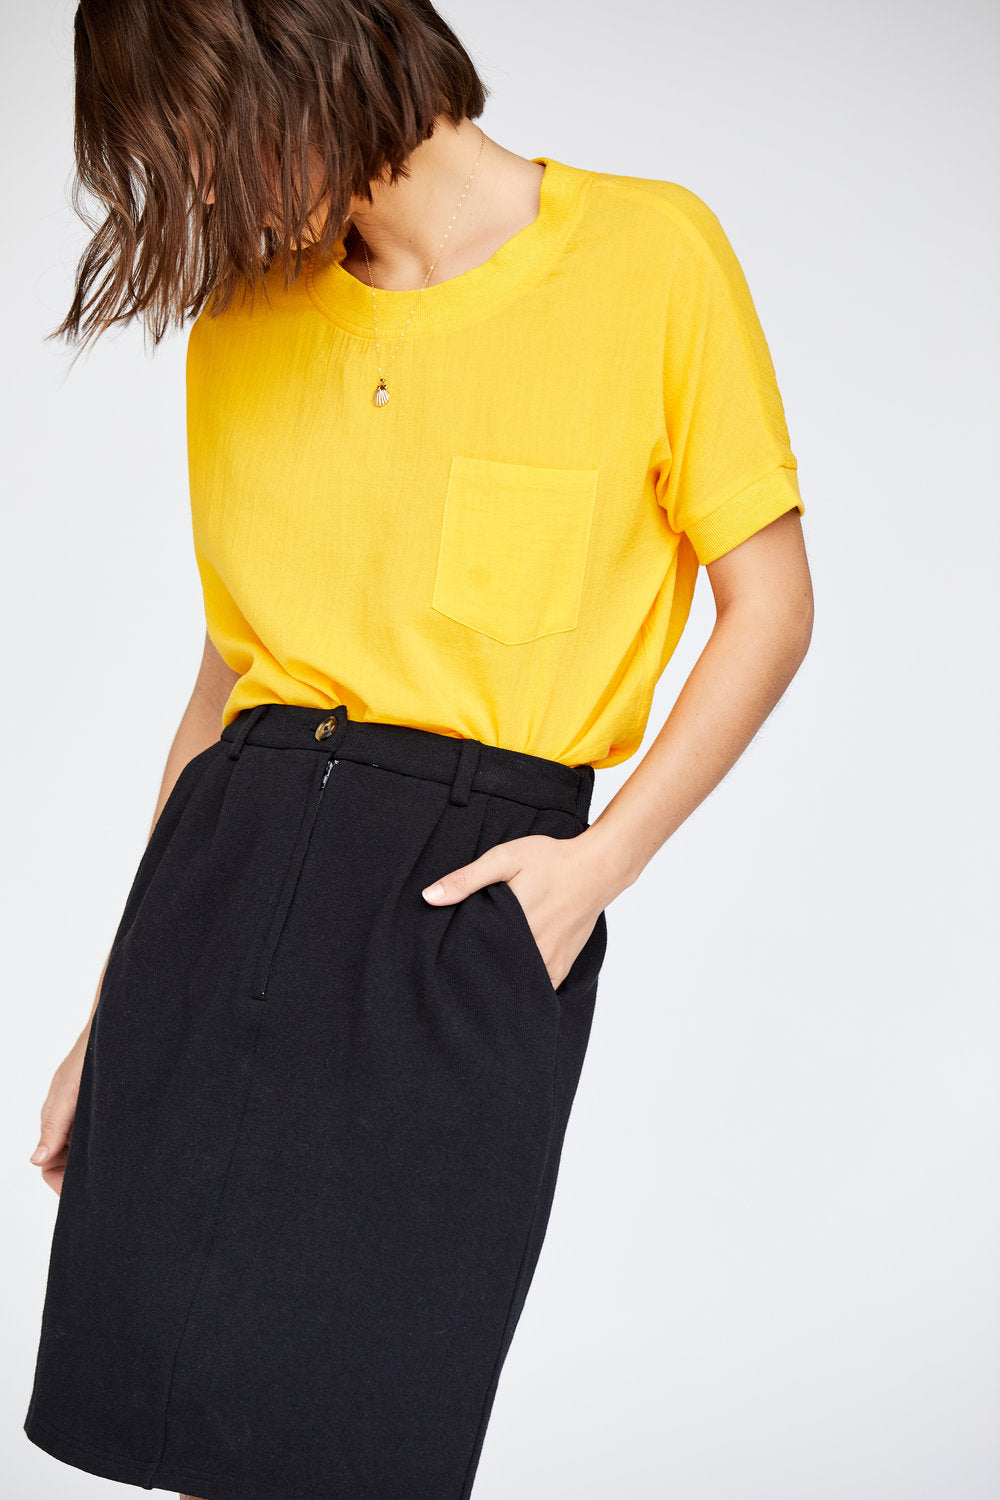 Callahan - Chelsea Pocket Tee - Canary Yellow - Galz